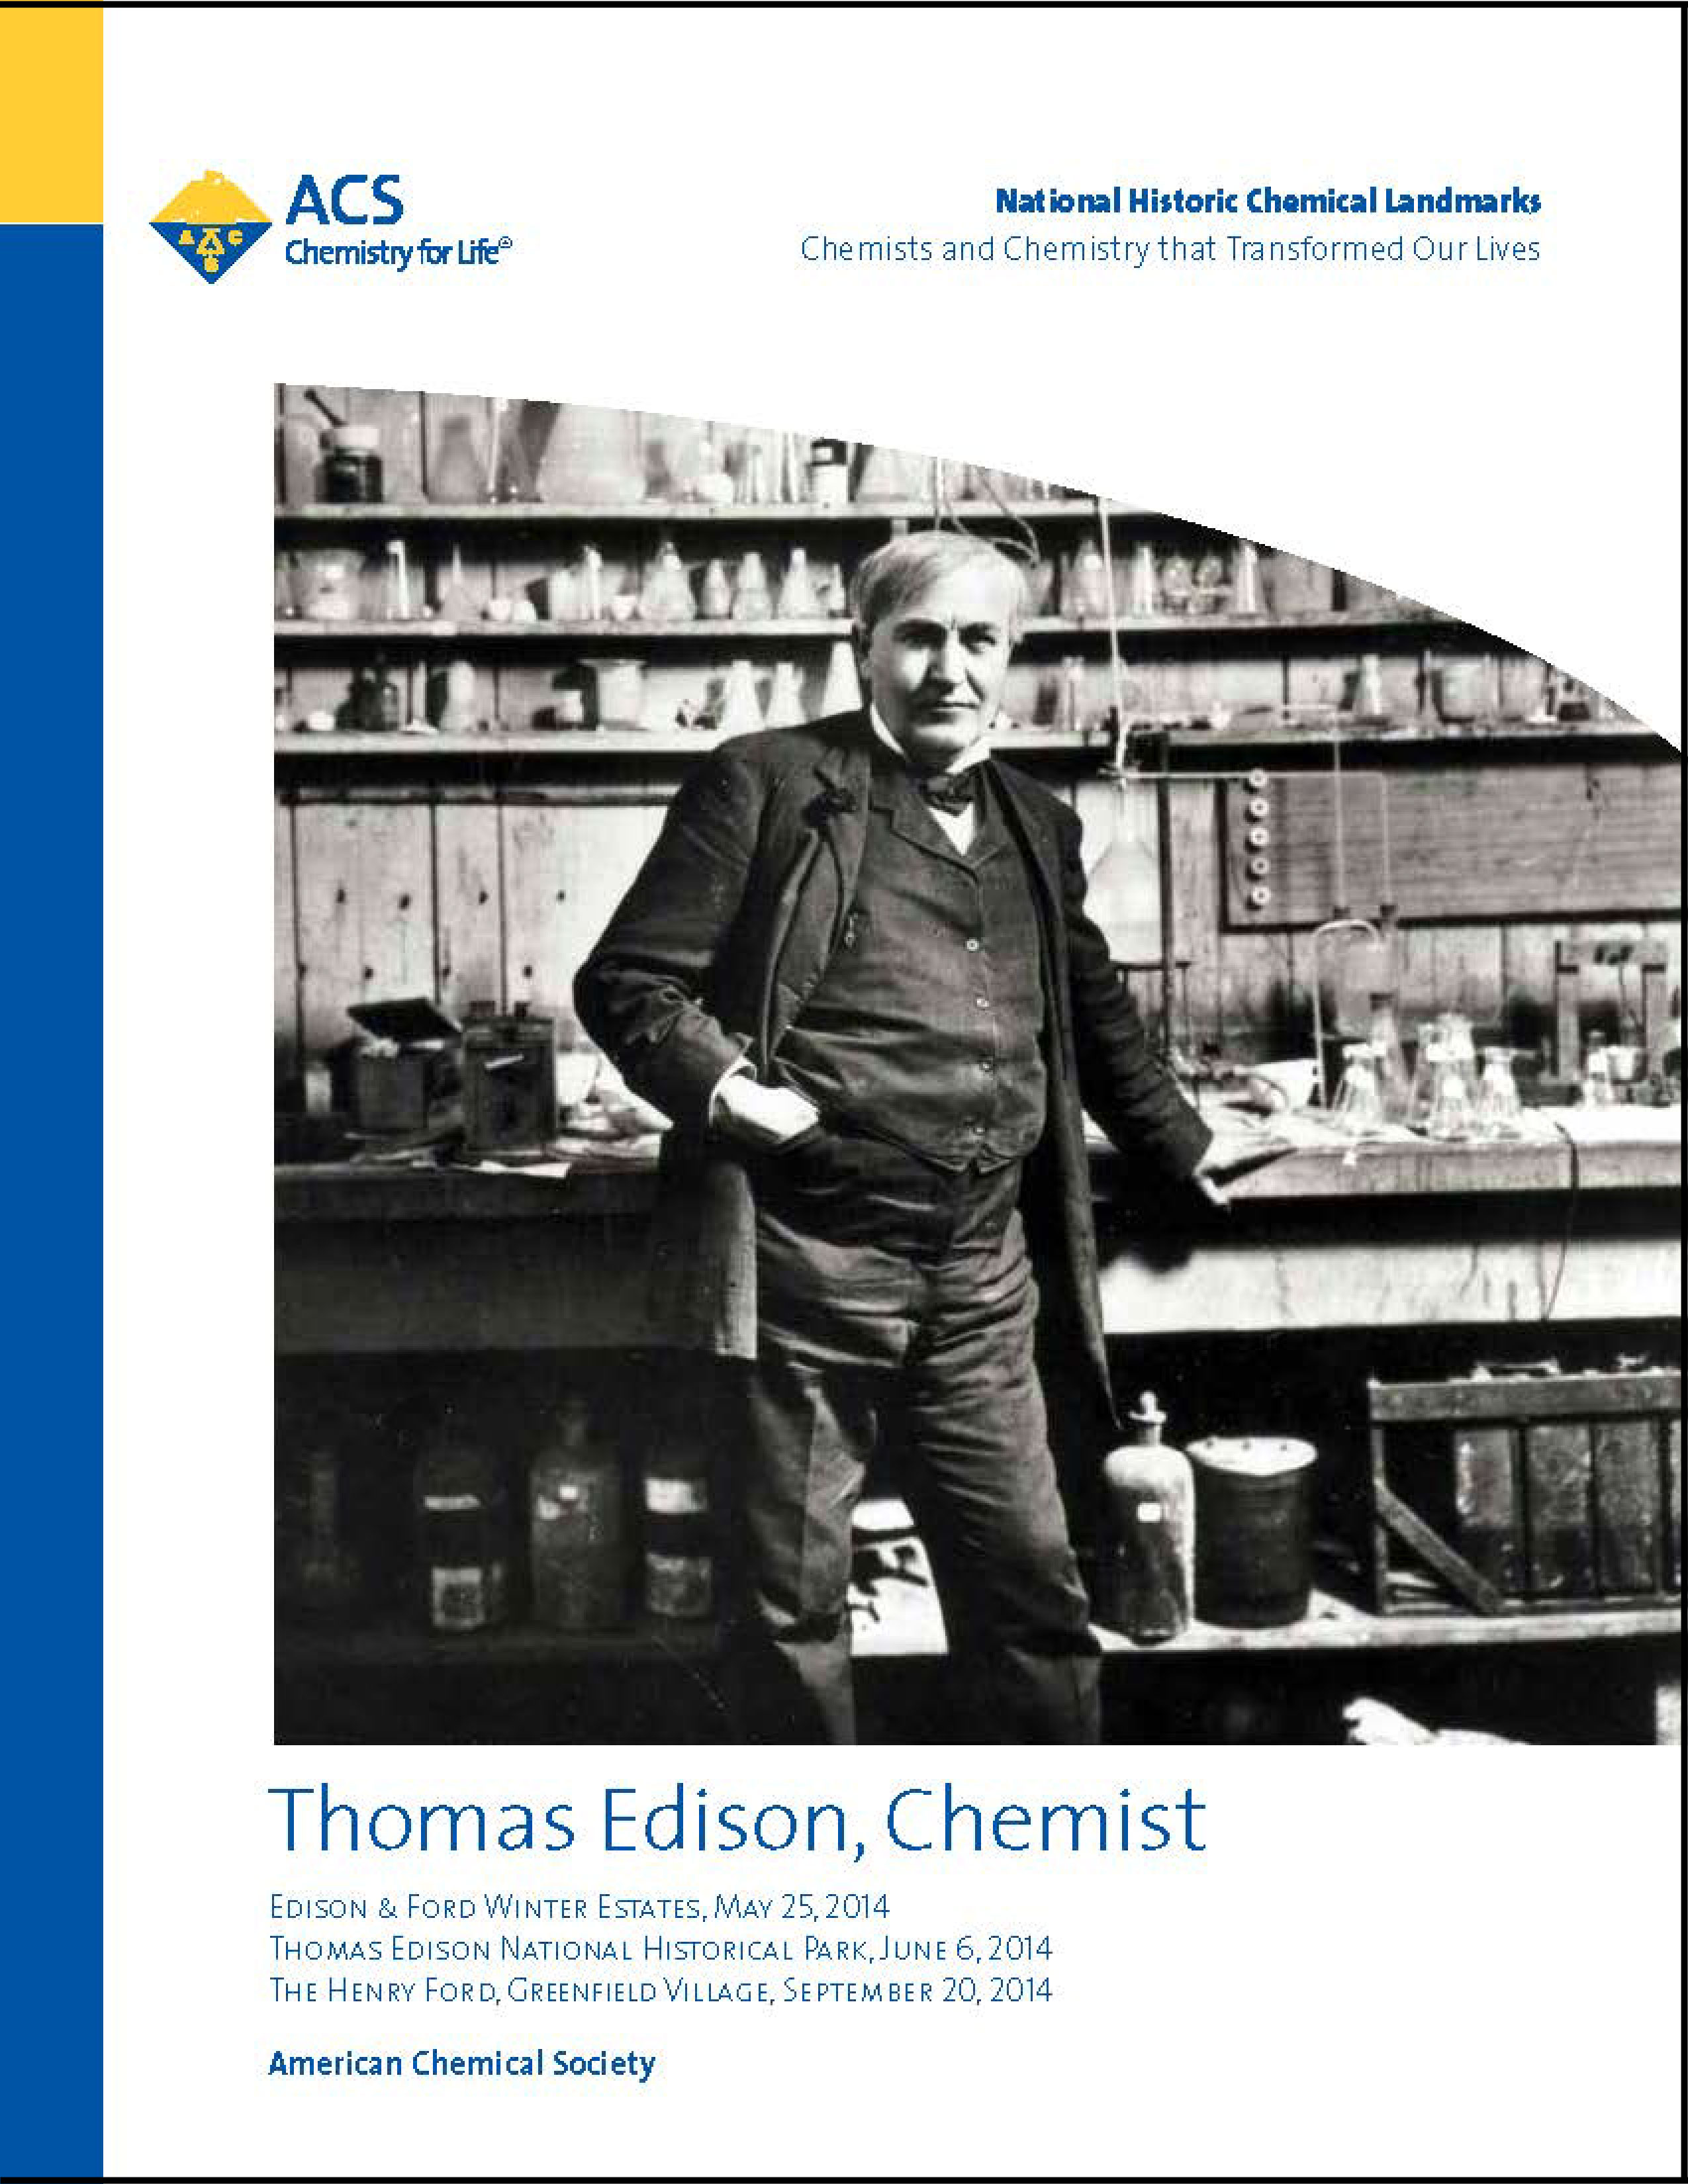 Thomas Edison, Chemist National Historic Chemical Landmark commemorative booklet